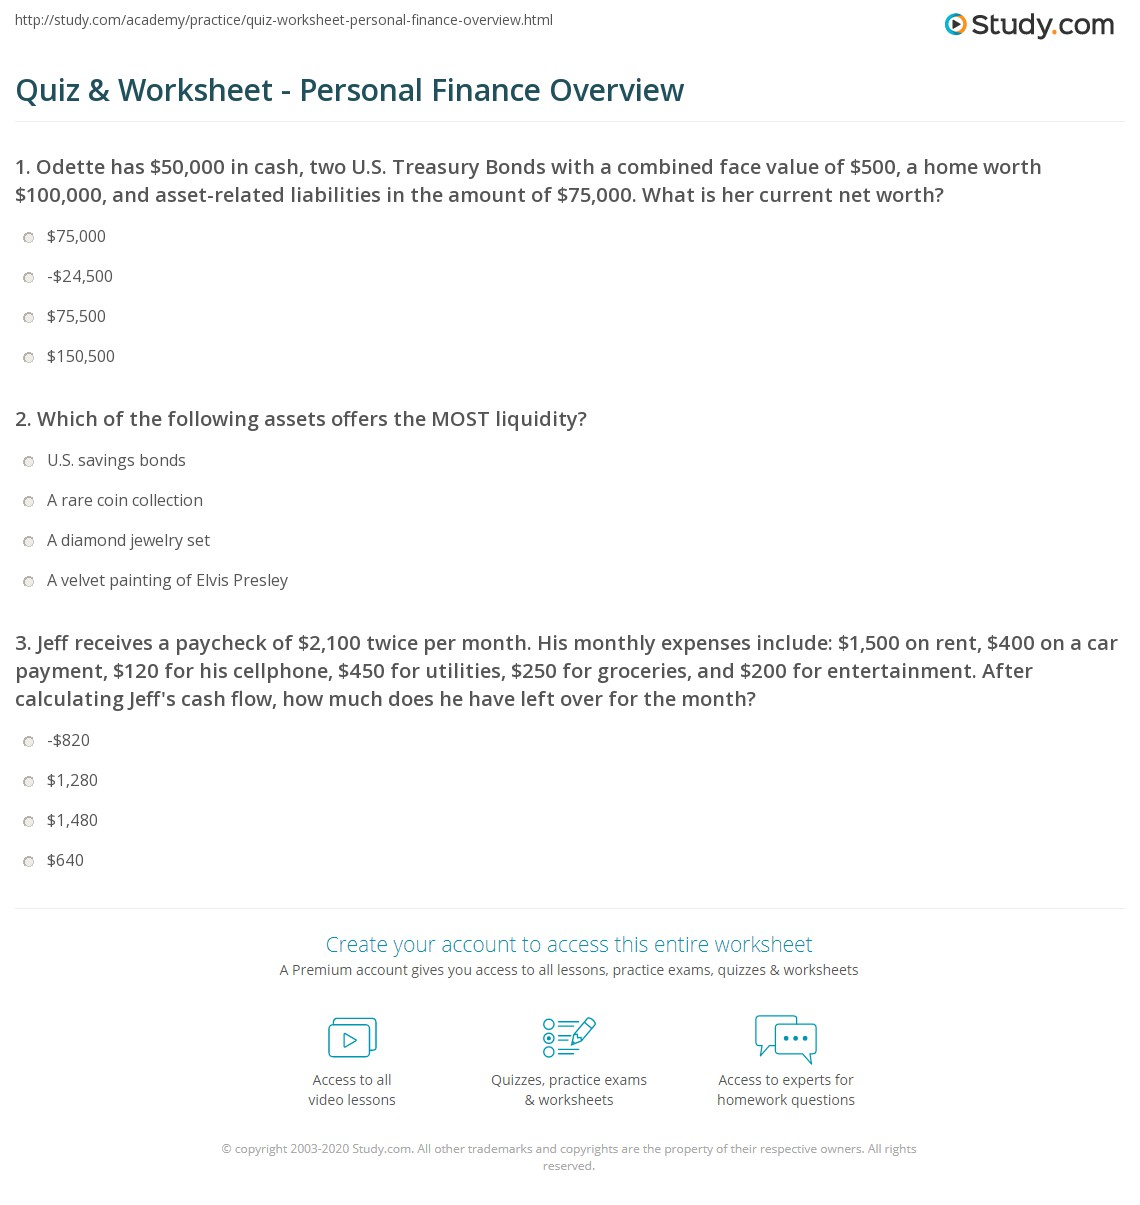 Free Worksheet How To Calculate Your Net Worth Worksheet quiz worksheet personal finance overview study com print introduction to worksheet